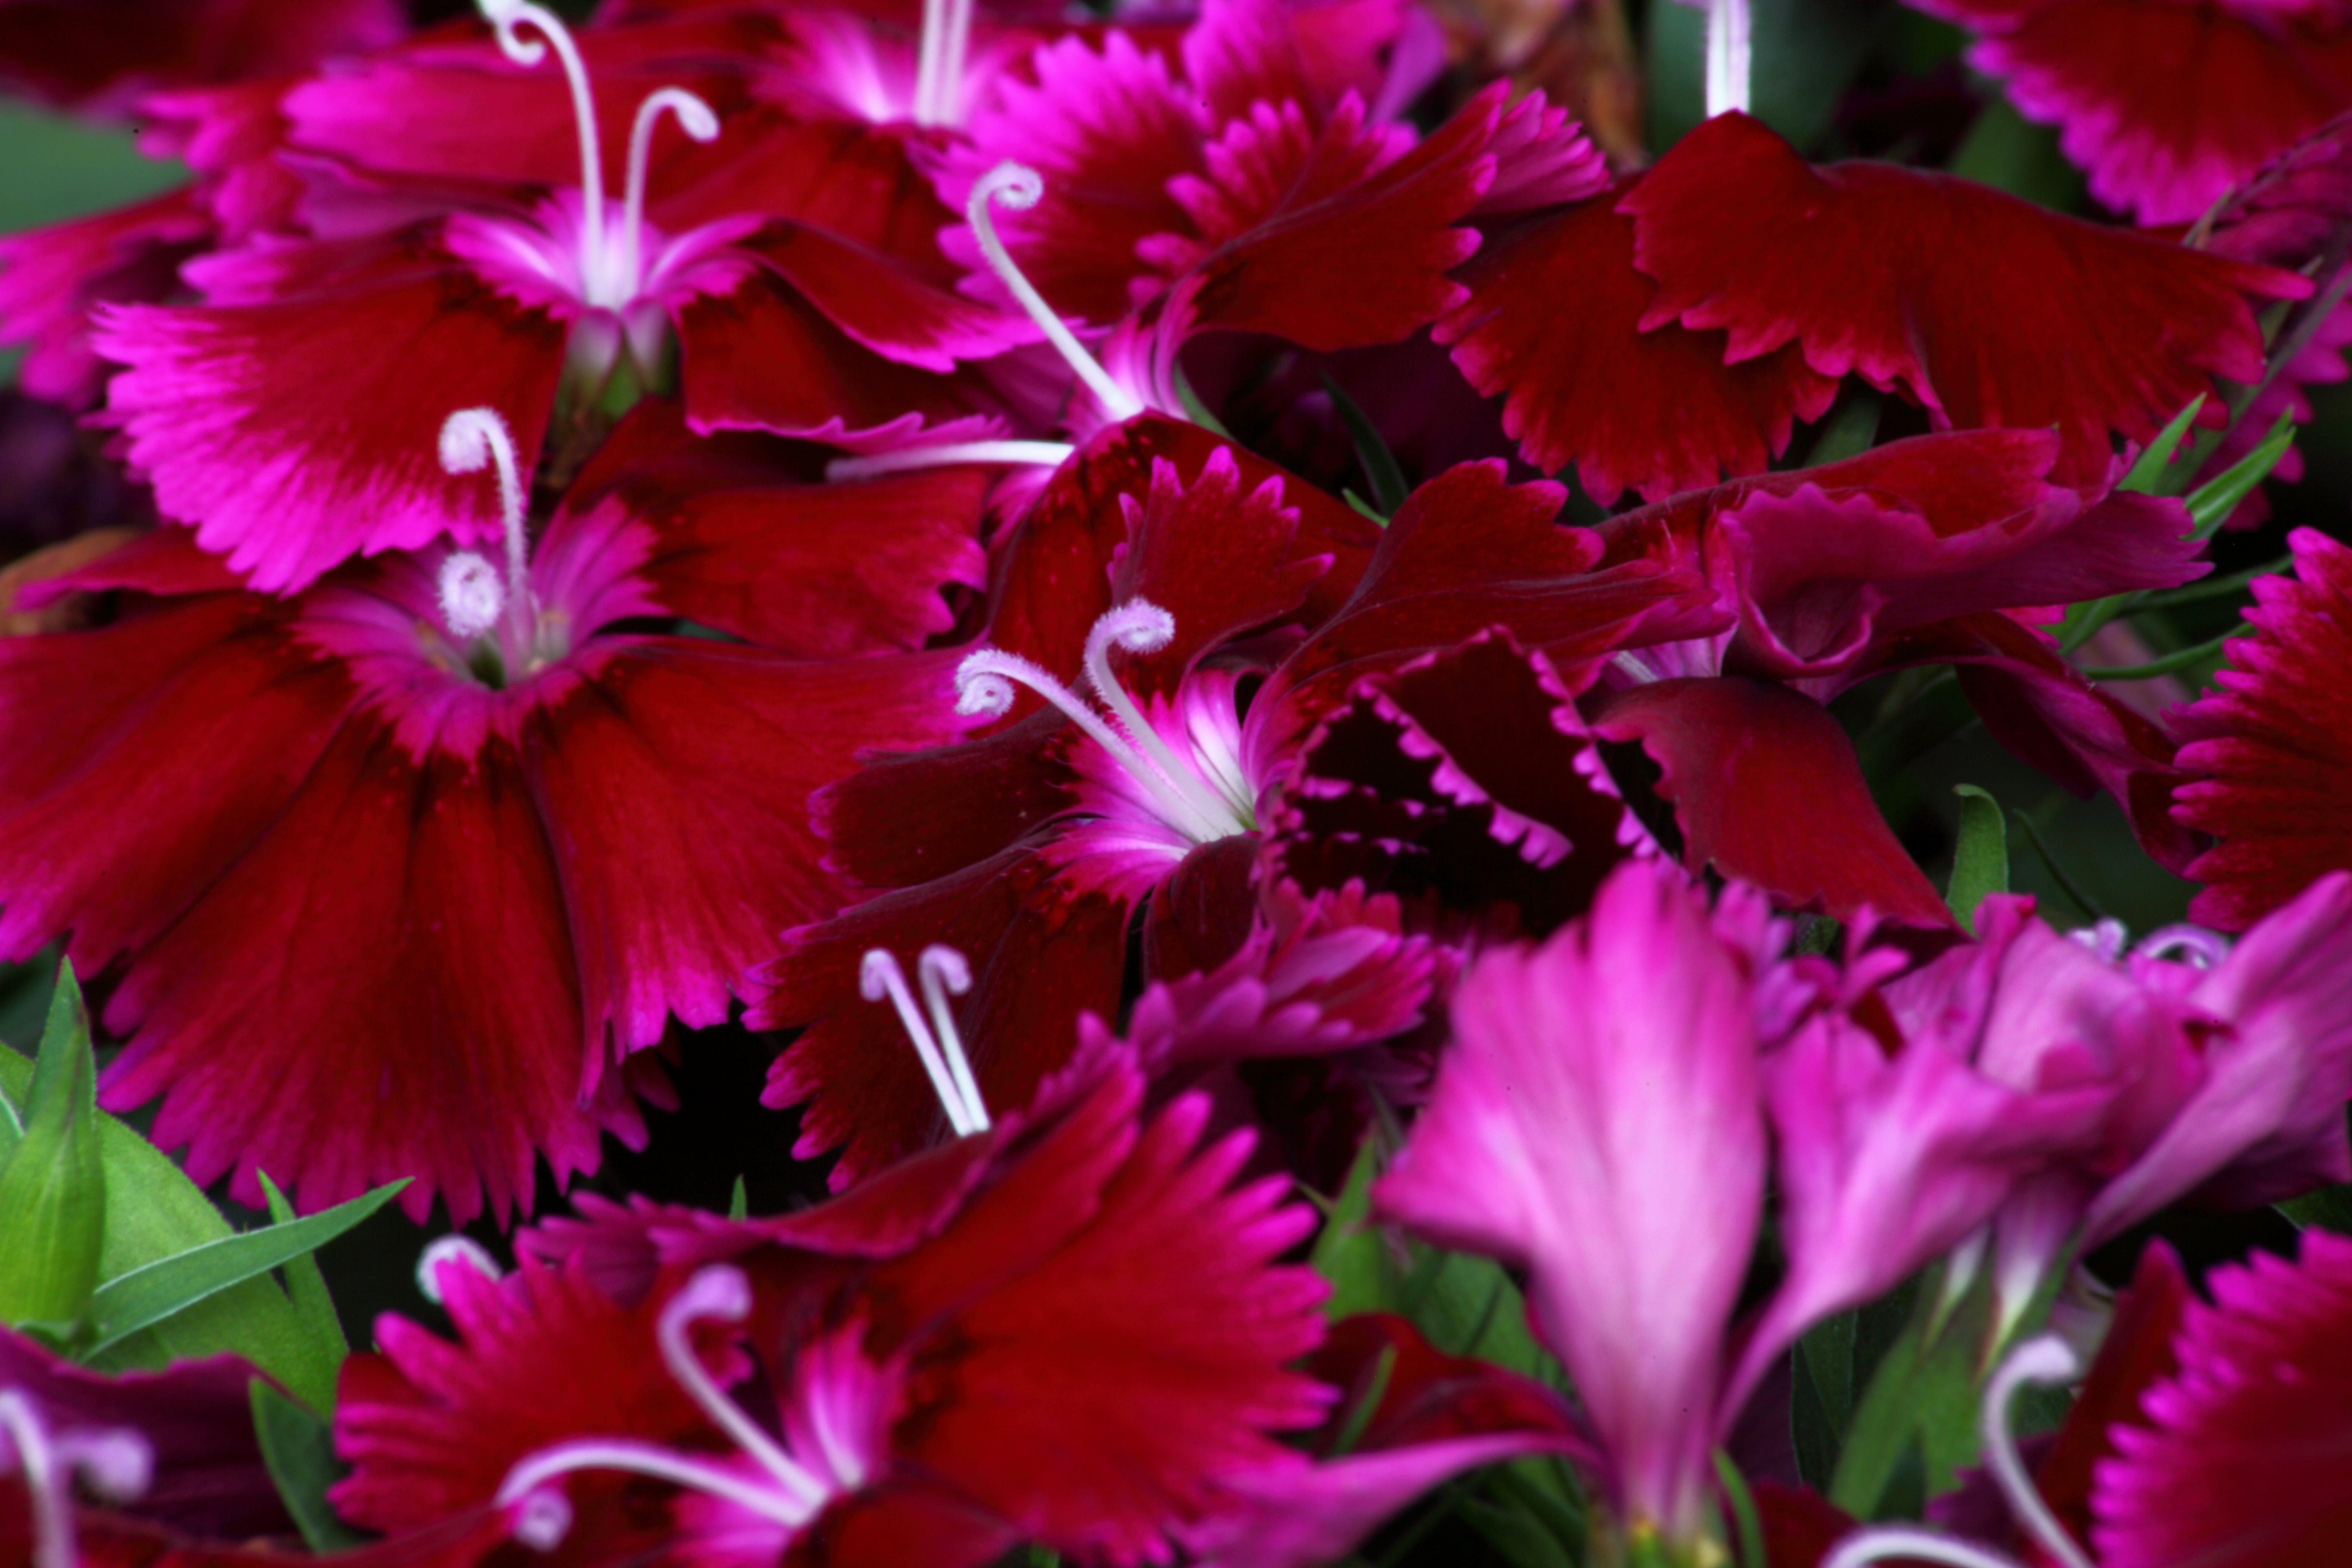 Dianthus Macro Flowers Nature Pictures by ForestWander 5616x3744